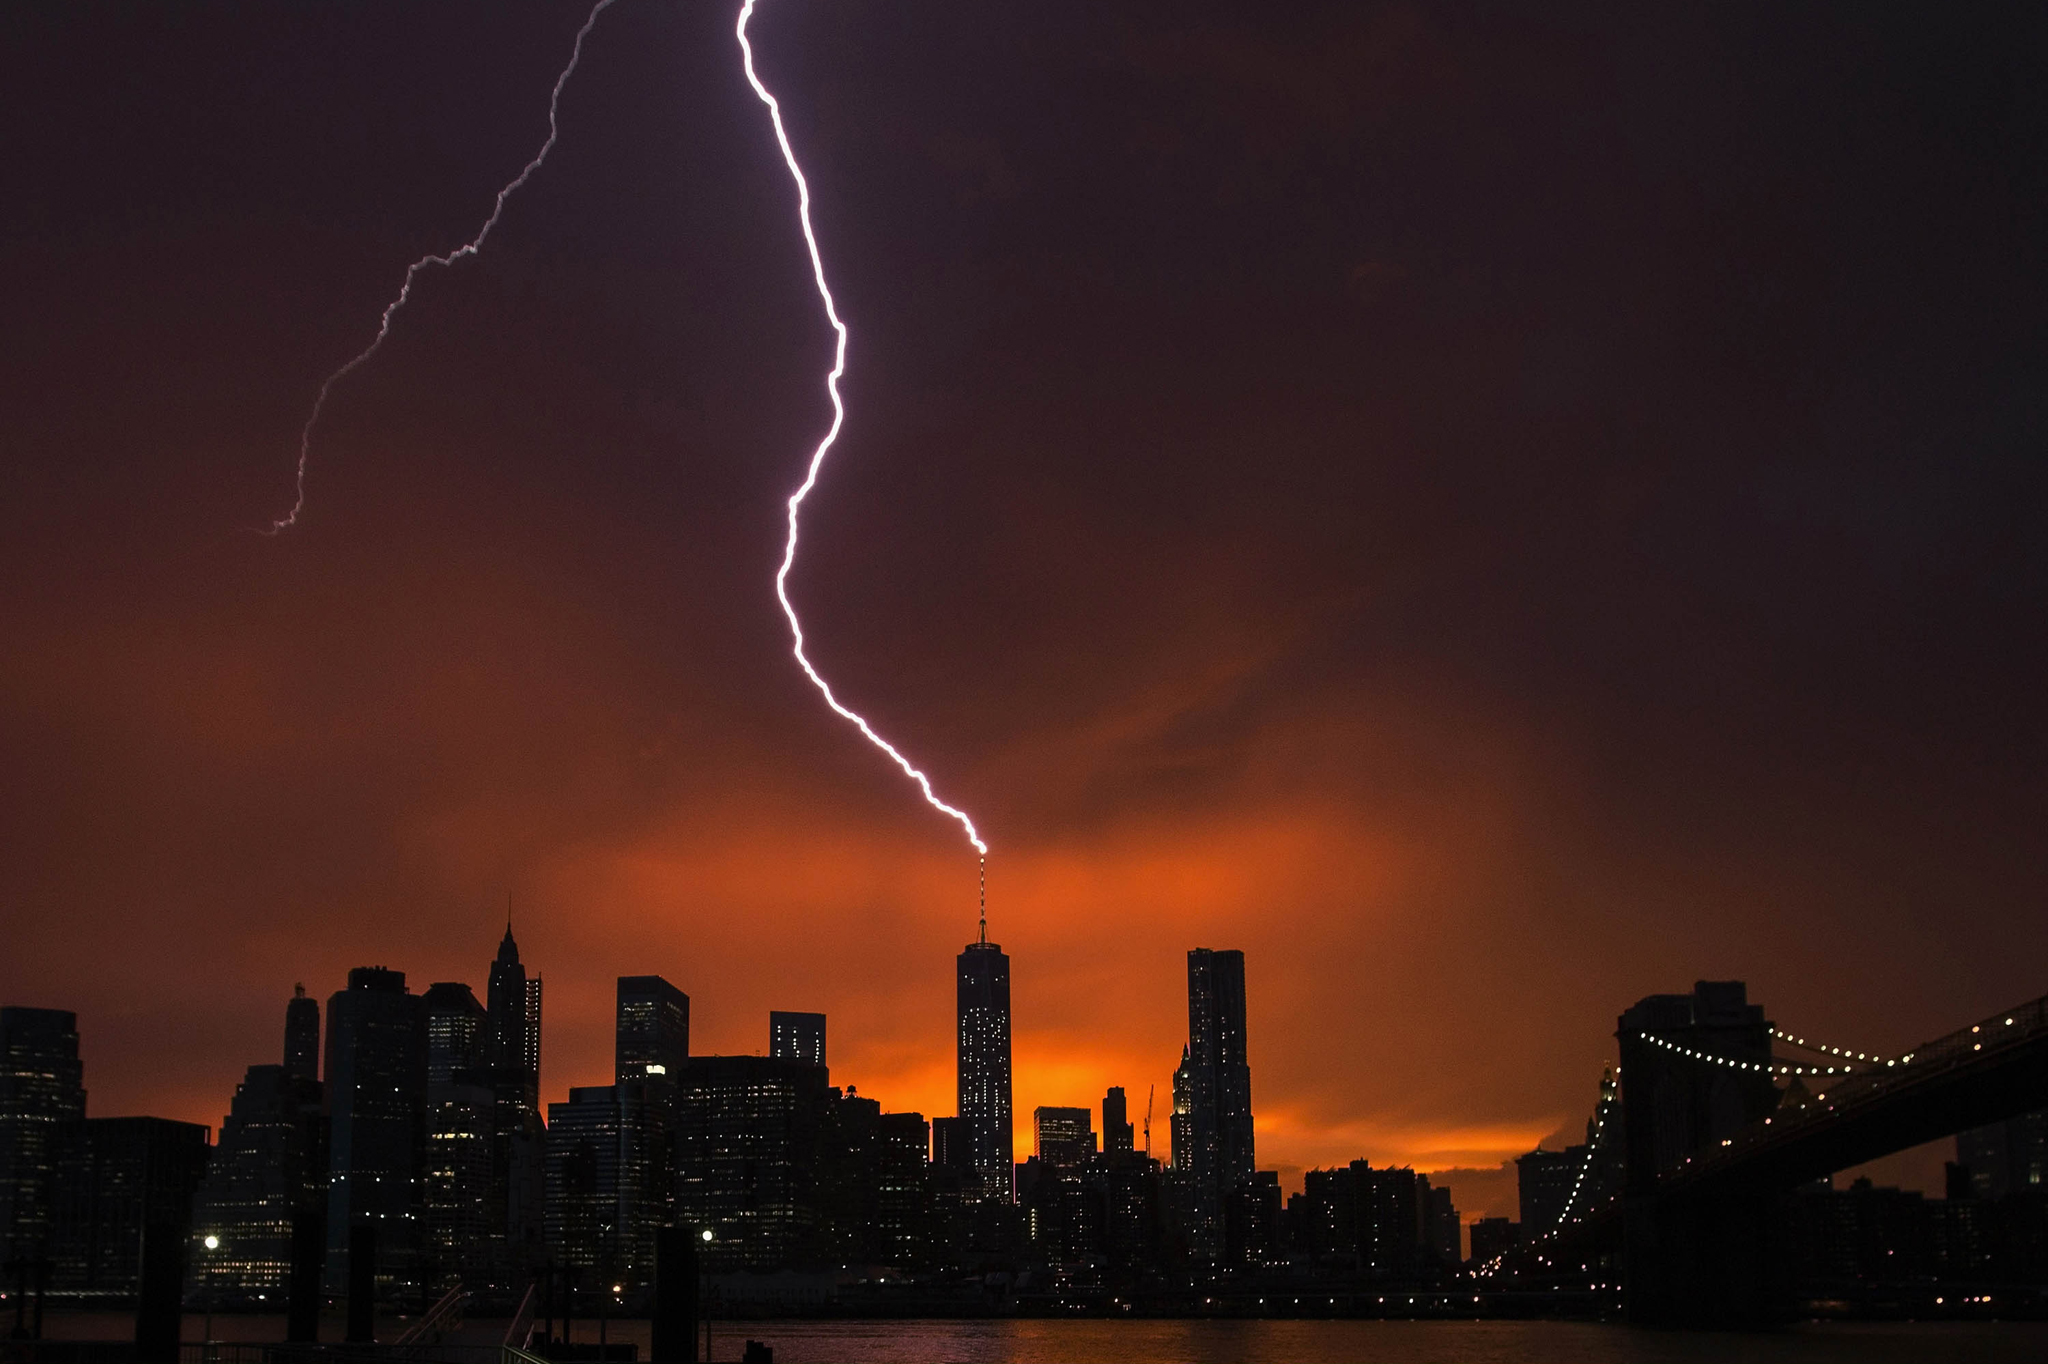 "REUTERS PICTURE HIGHLIGHT...ATTENTION EDITORS - REUTERS PICTURE HIGHLIGHT TRANSMITTED BY 0131 GMT ON JULY 3, 2014    LJJ015  Lightning strikes One World Trade Center in Manhattan as the sun sets behind the city after a summer storm in New York.  REUTERS/Lucas Jackson     REUTERS NEWS PICTURES HAS NOW MADE IT EASIER TO FIND THE BEST PHOTOS FROM THE MOST IMPORTANT STORIES AND TOP STANDALONES EACH DAY. Search for ""TPX"" in the IPTC Supplemental Category field or ""IMAGES OF THE DAY"" in the Caption field and you will find a selection of 80-100 of our daily Top Pictures.    REUTERS NEWS PICTURES.     TEMPLATE OUT"